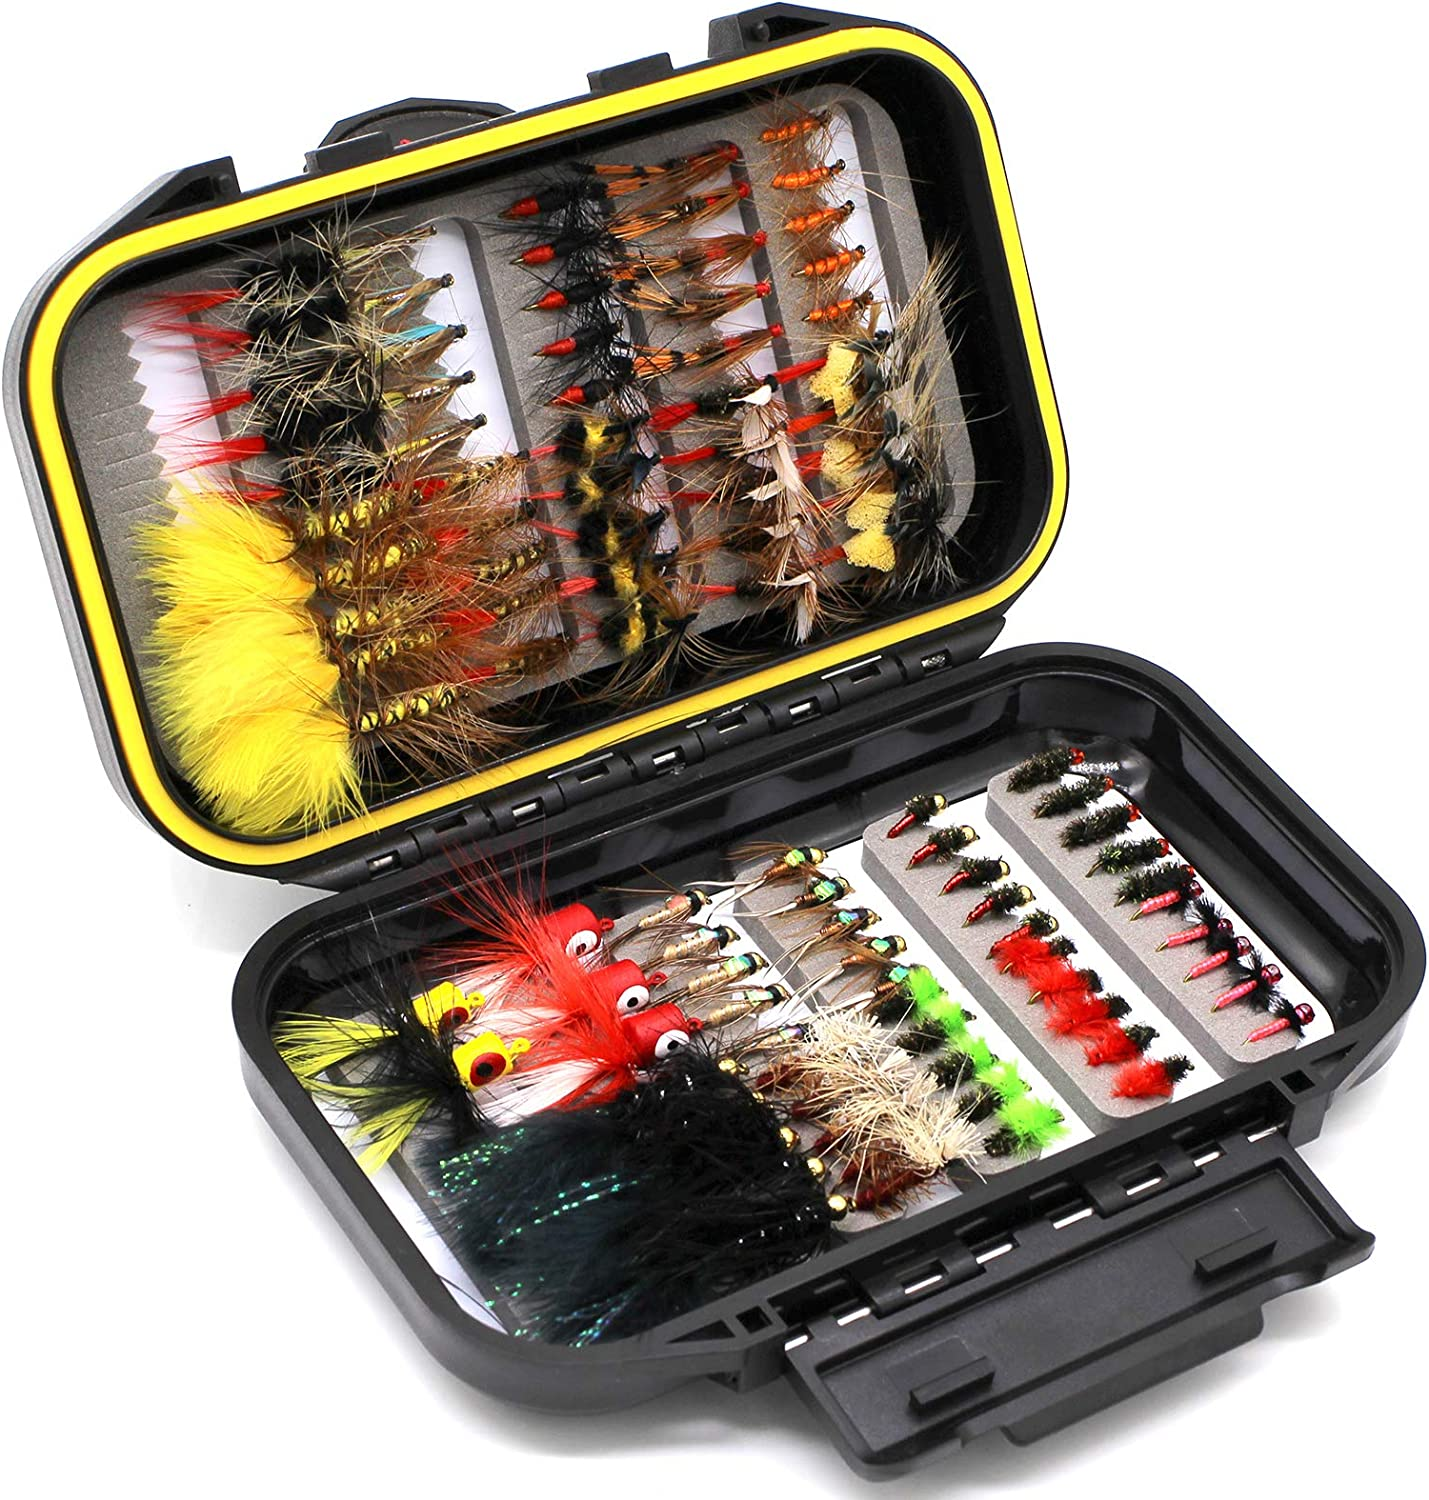 120pcs Fly Fishing Dry Flies Wet Flies Assortment Kit with Waterproof Fly Box for Trout Fishing Croch 60pcs